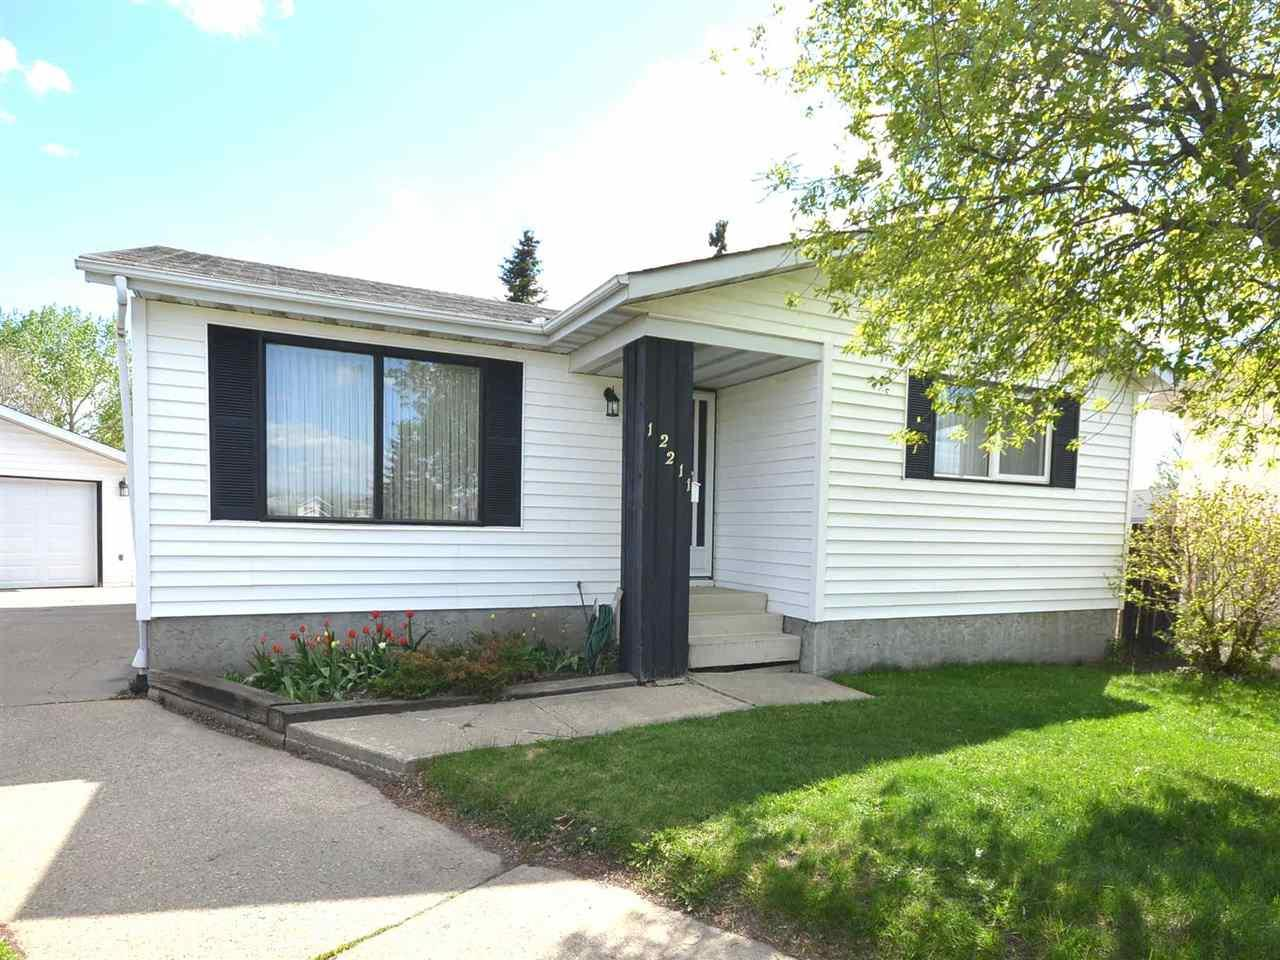 Removed: 12211 156 Avenue Northwest, Edmonton, AB - Removed on 2019-06-18 06:12:20